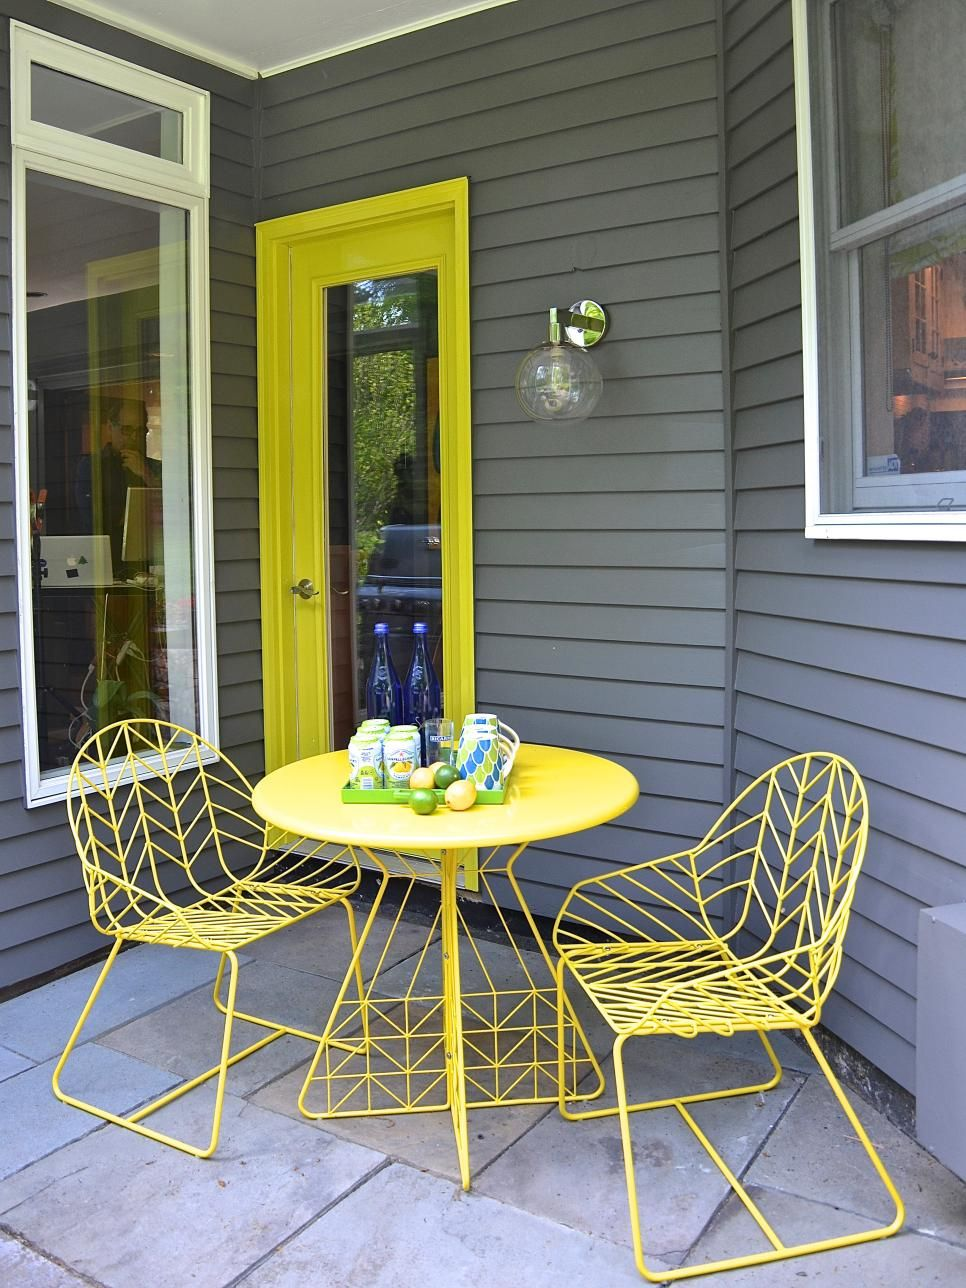 18 small yards balconies and rooftop patios hgtv http